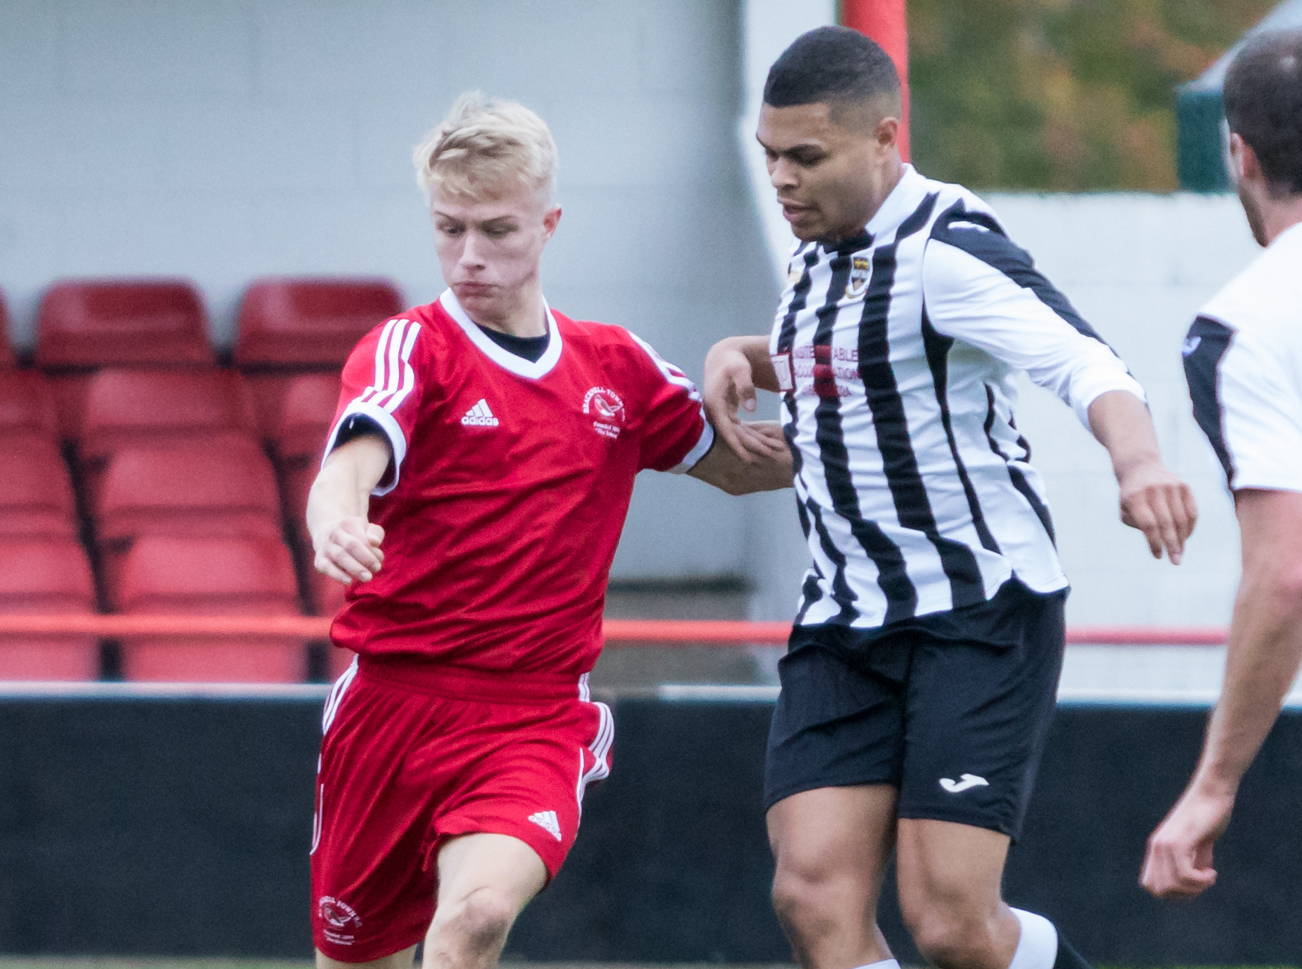 Win or bust for Bracknell Town youth at home to Uxbridge tonight